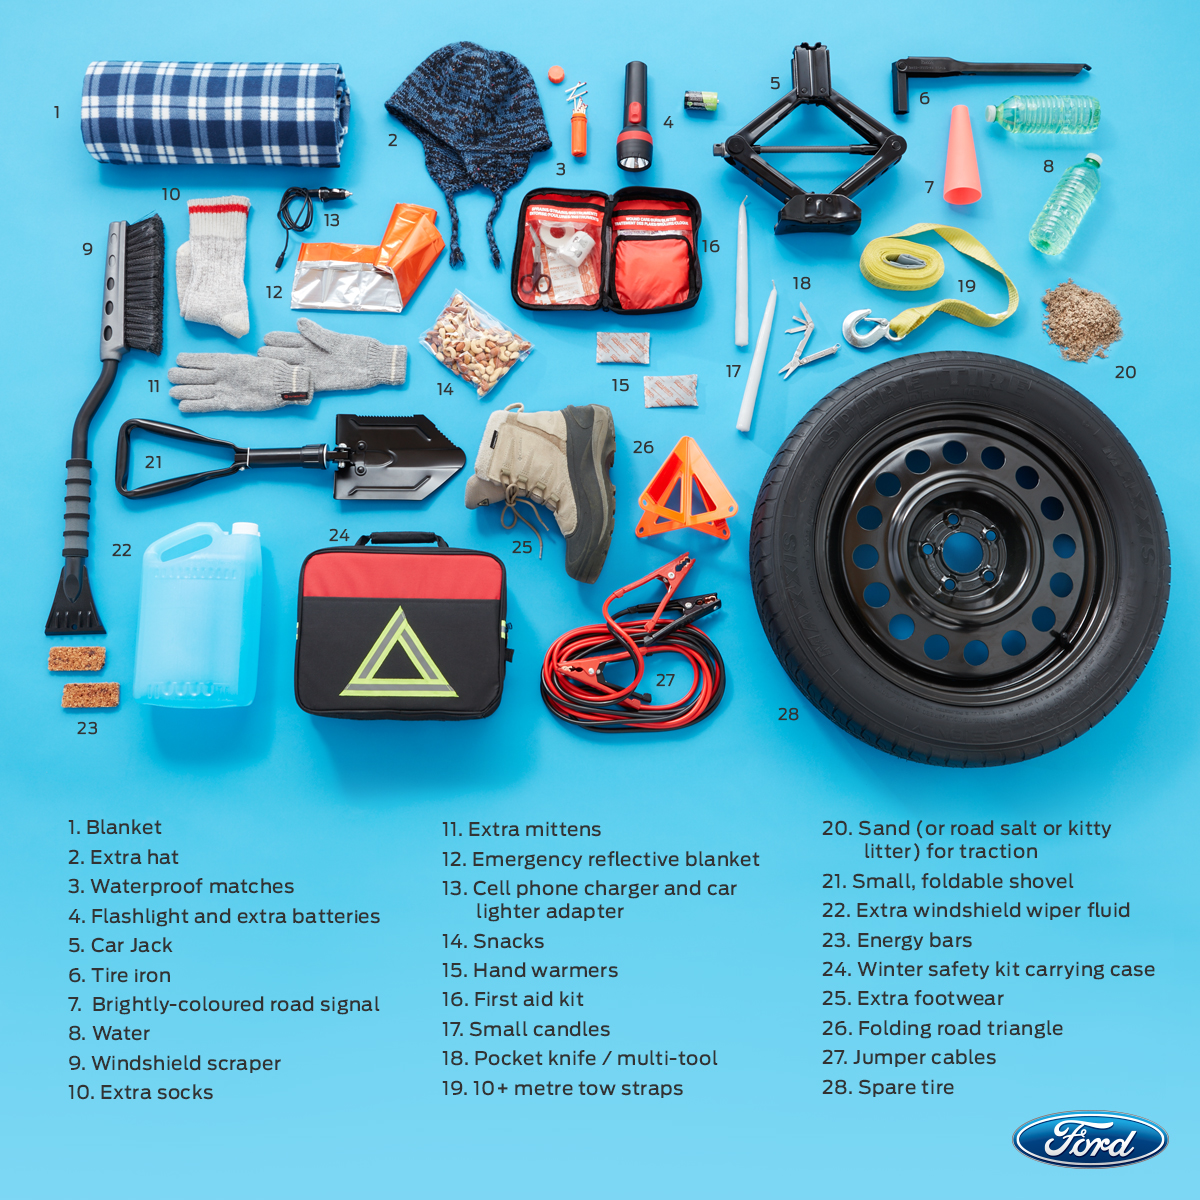 What should be in a winter car kit?